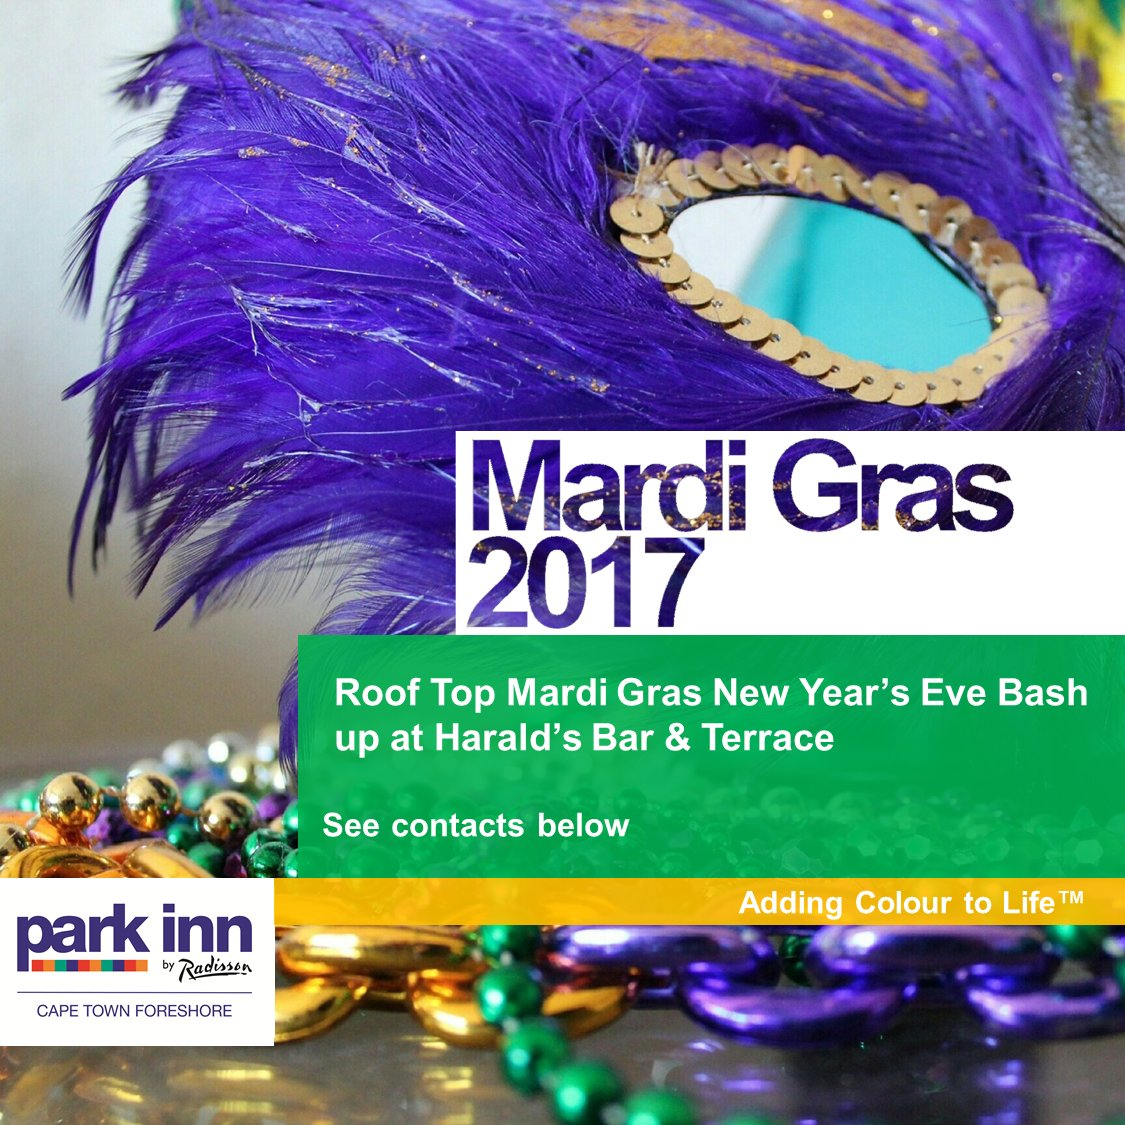 NEW YEARS EVE 2017   Mardi Gras . to enquire more details or to book your spot info.capetown@rezidorparkinn.com (021) 427 4871 https://t.co/1VemMuPBKY